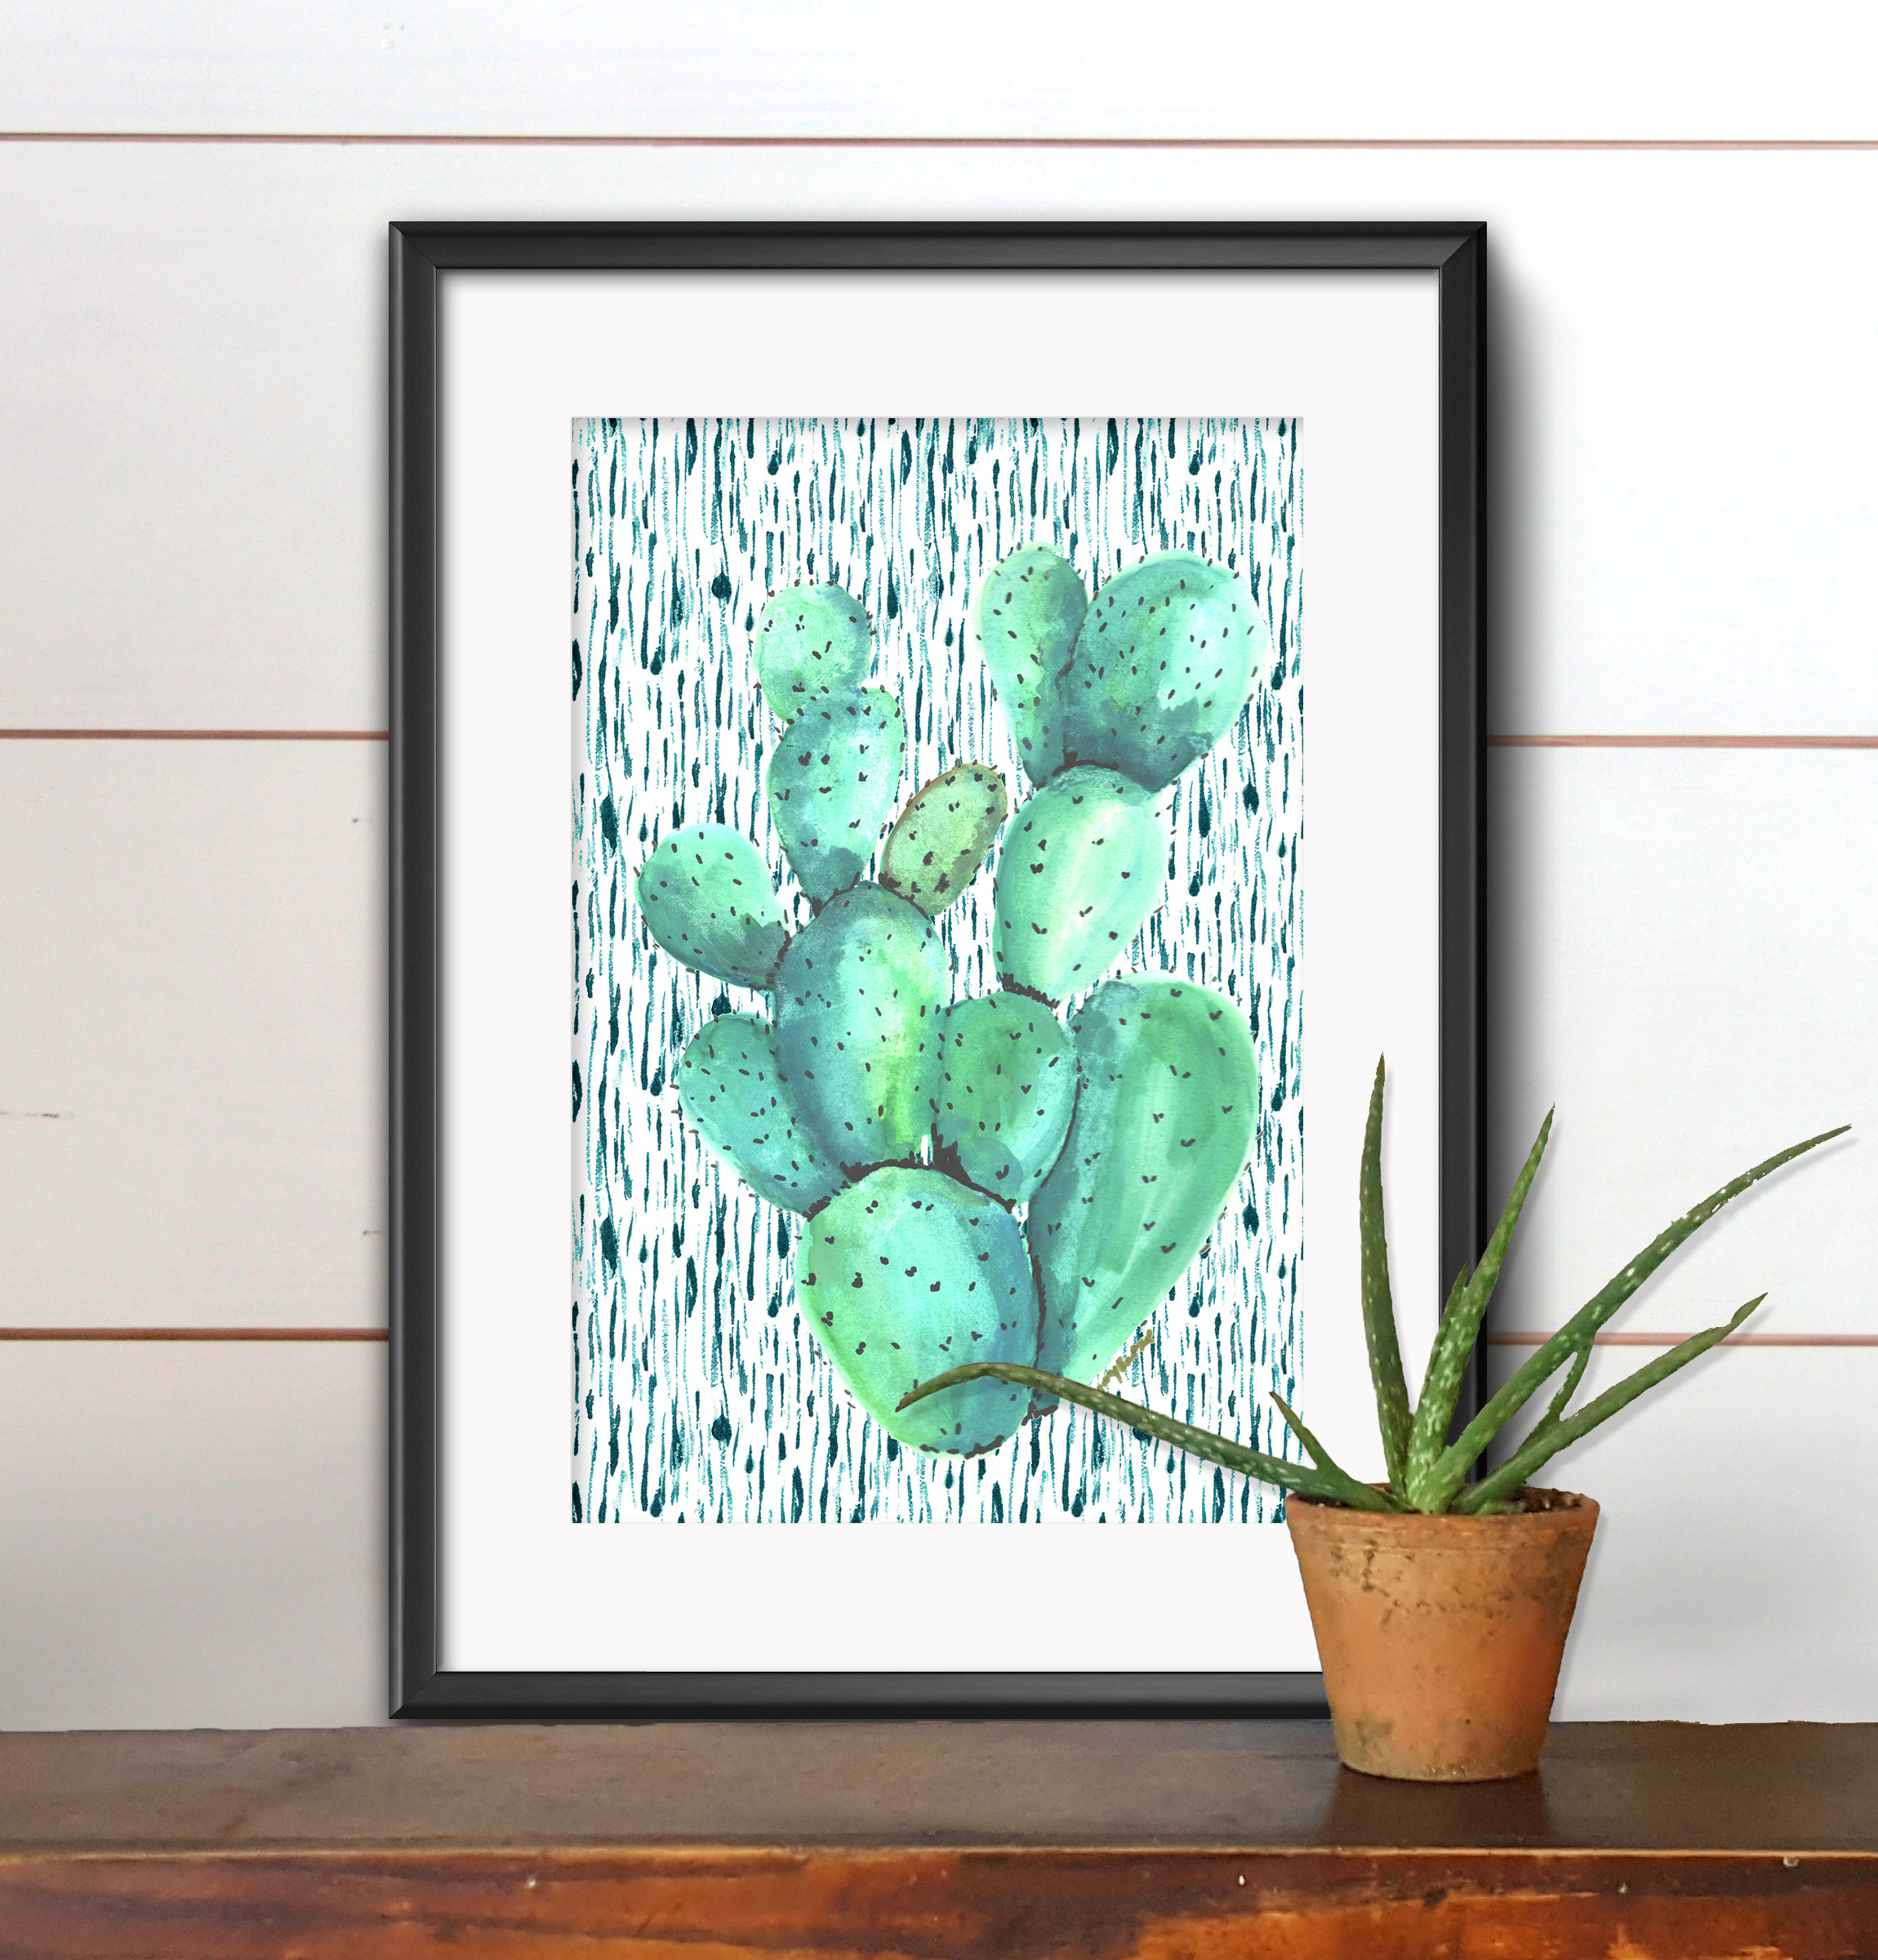 Art Prints (Unframed)   Starting at $16   (more options available)